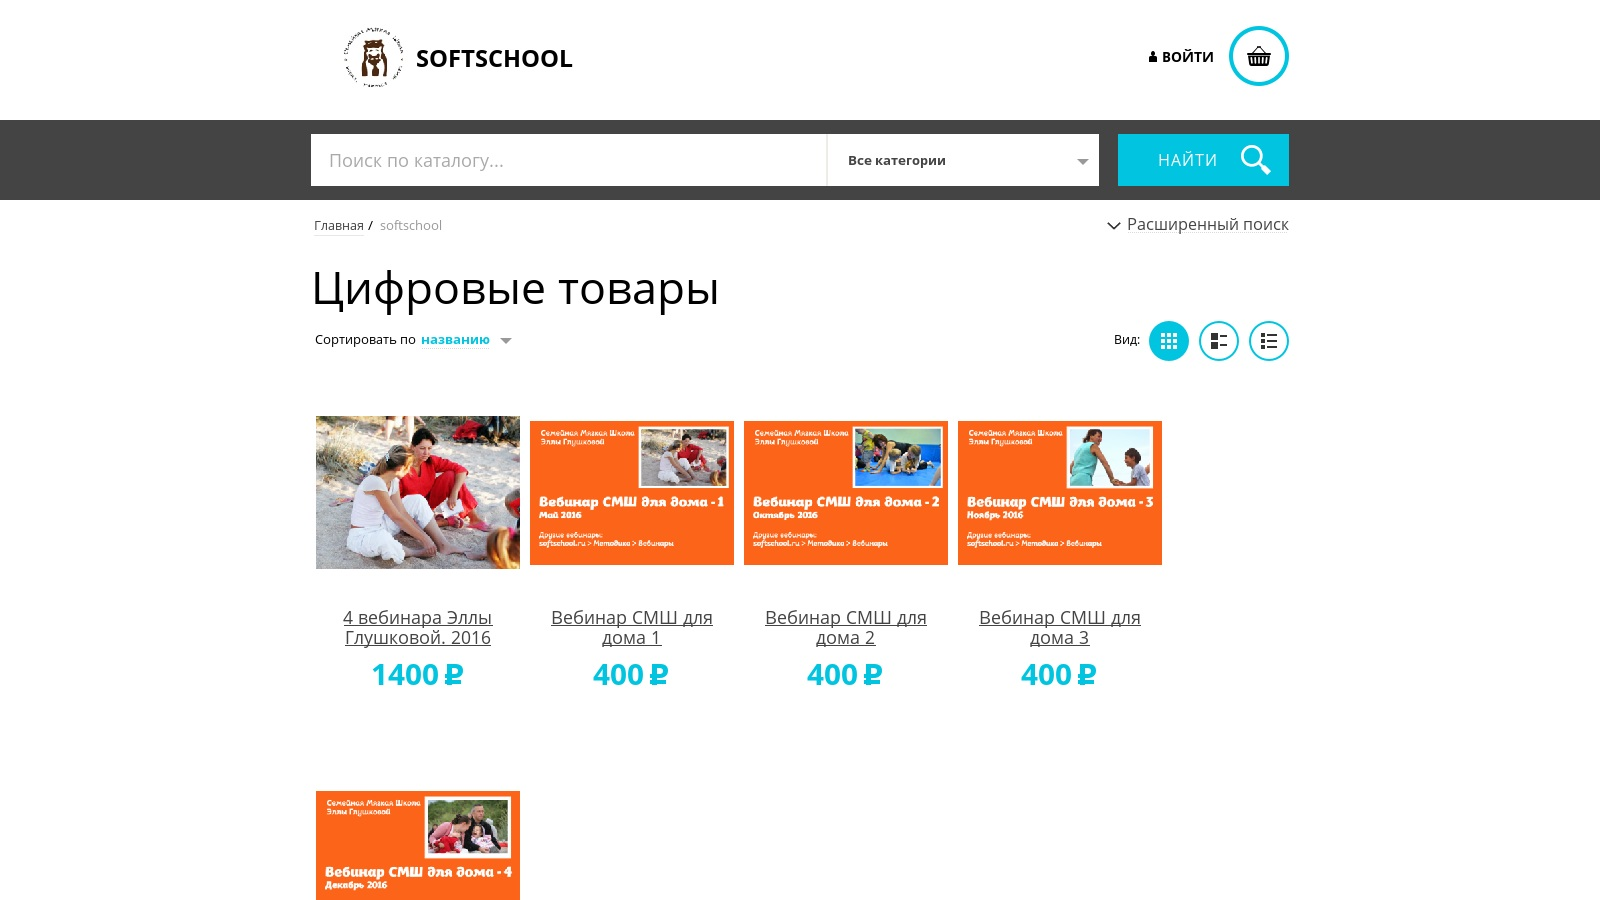 Softschool